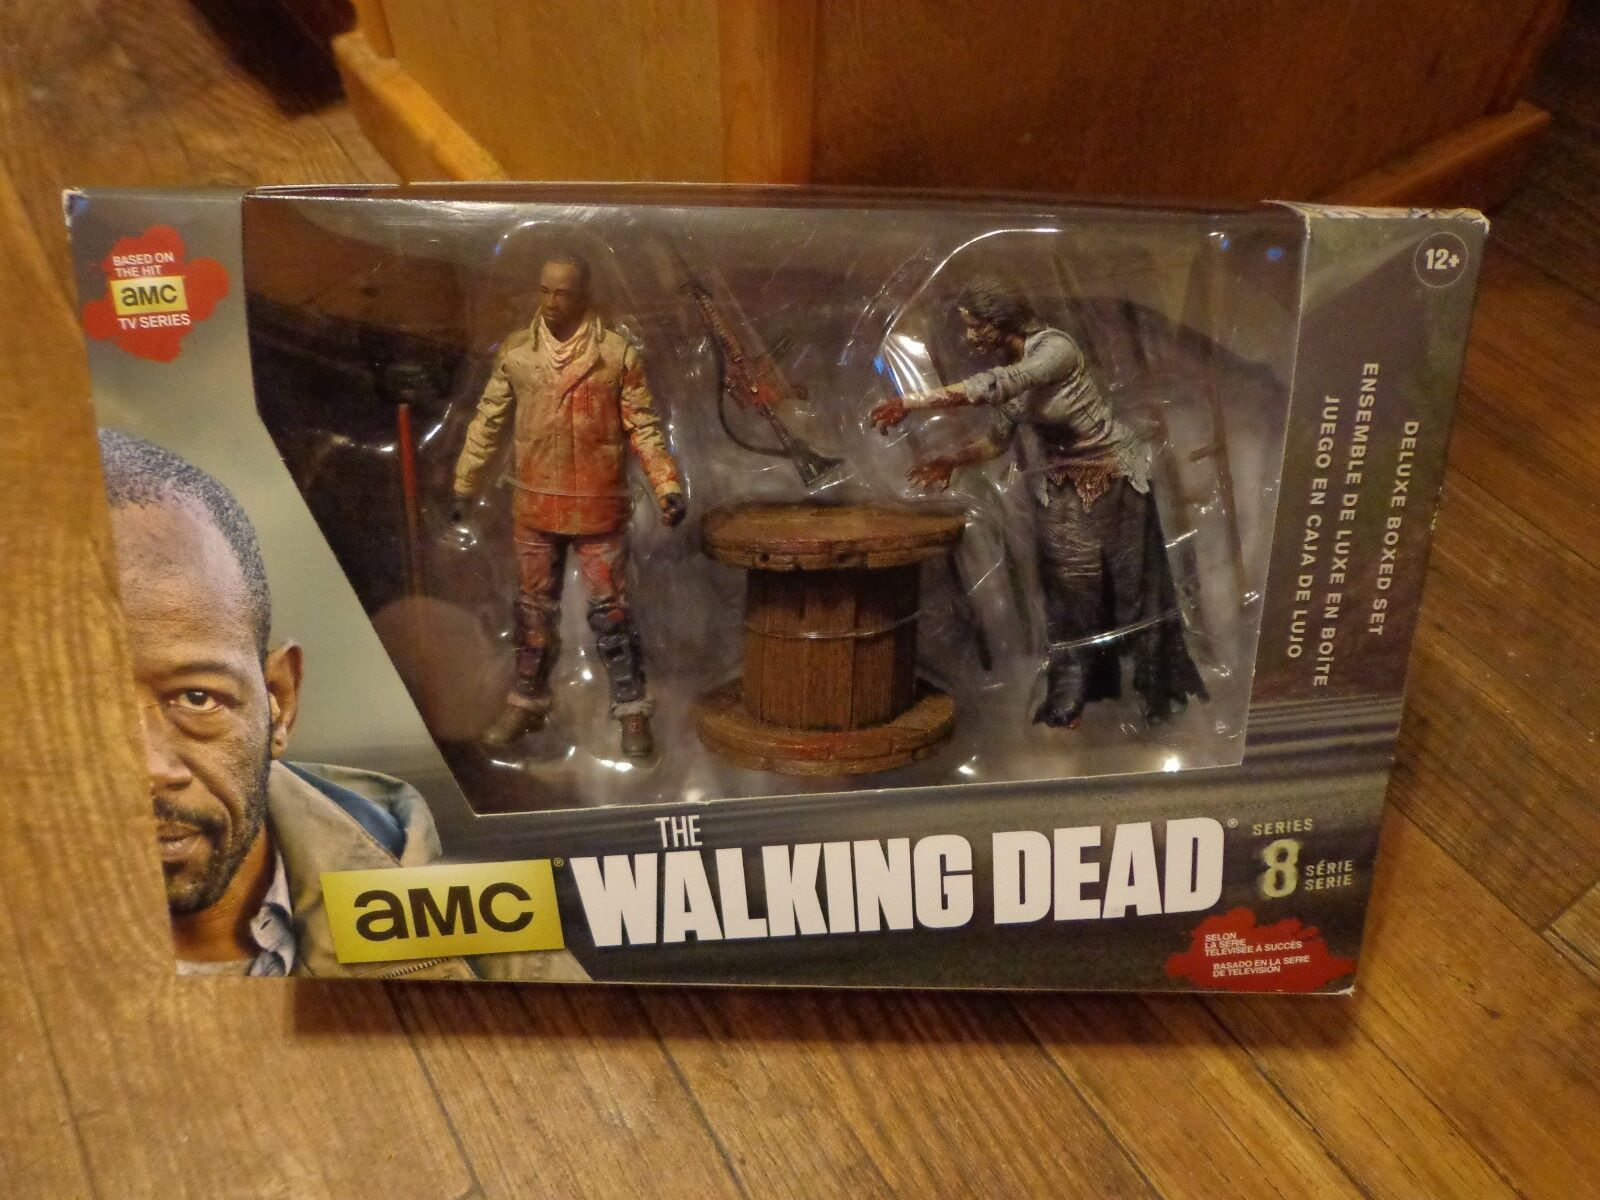 2015 MCFARLANE TOYS--THE WALKING DEAD--MORGAN & IMPALED IMPALED IMPALED WALKER FIGURE SET (NEW) 6e36d3